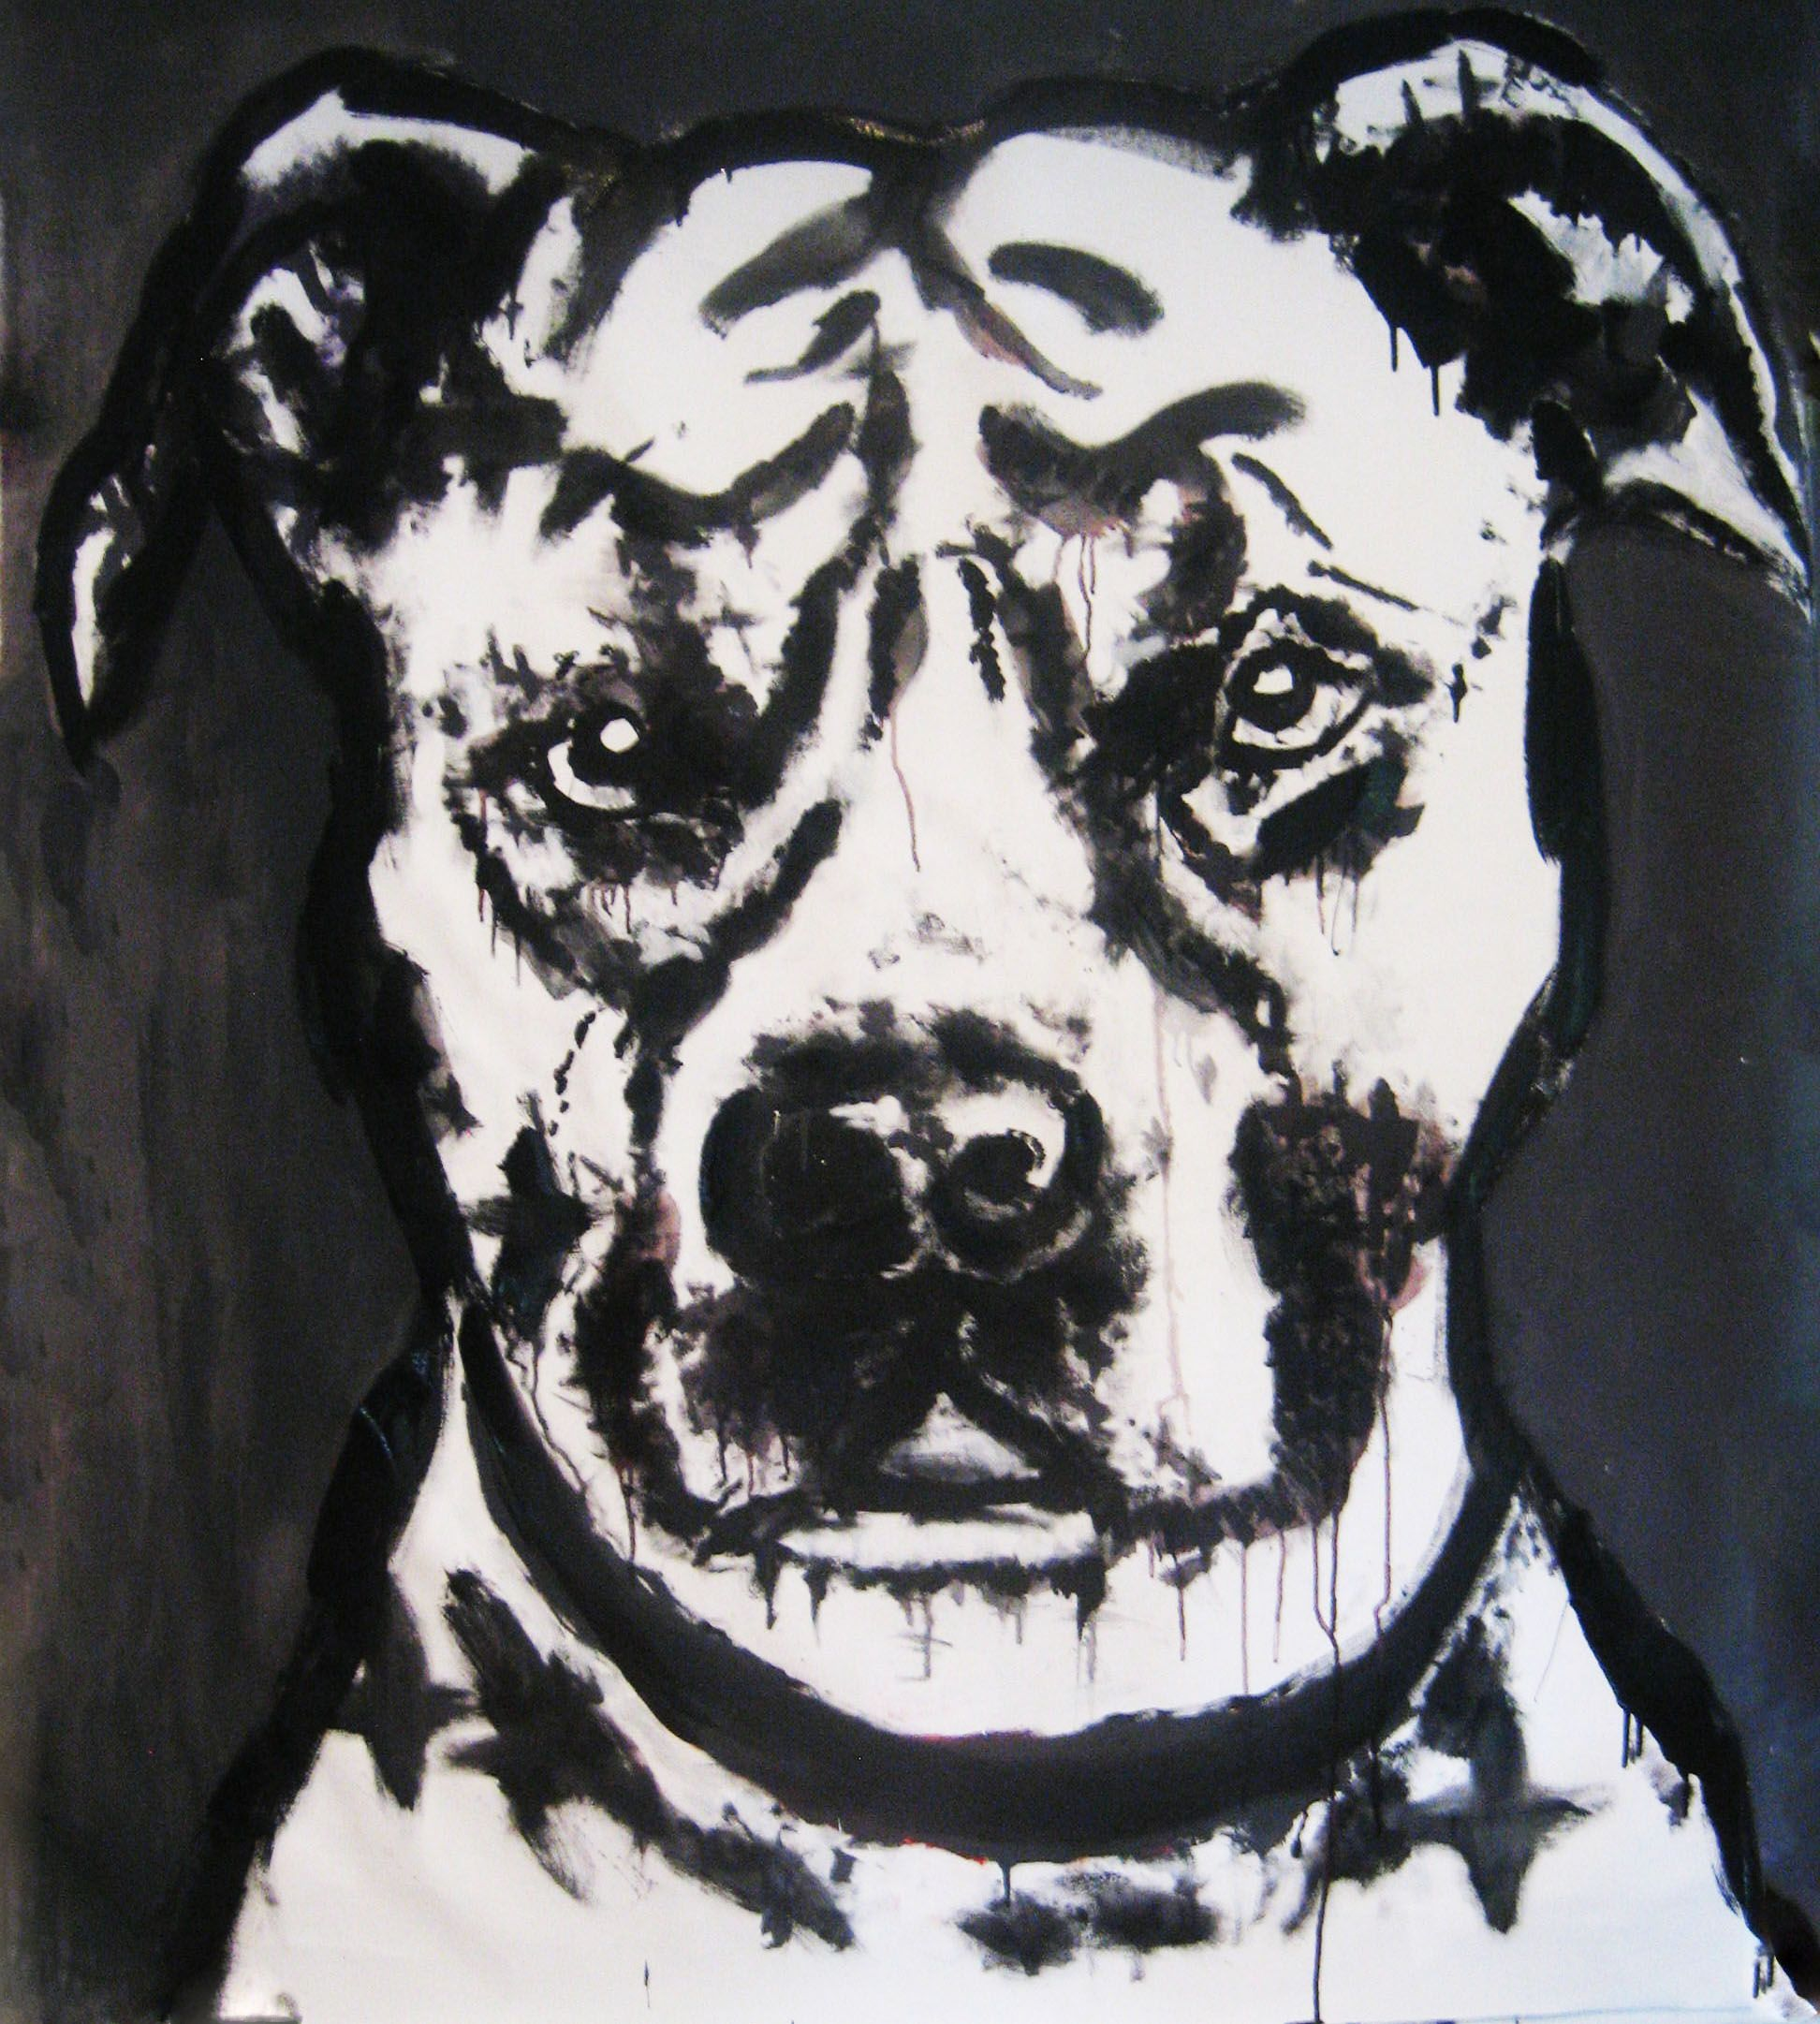 'A Dog's Life' Large painting by Diezel Australian art